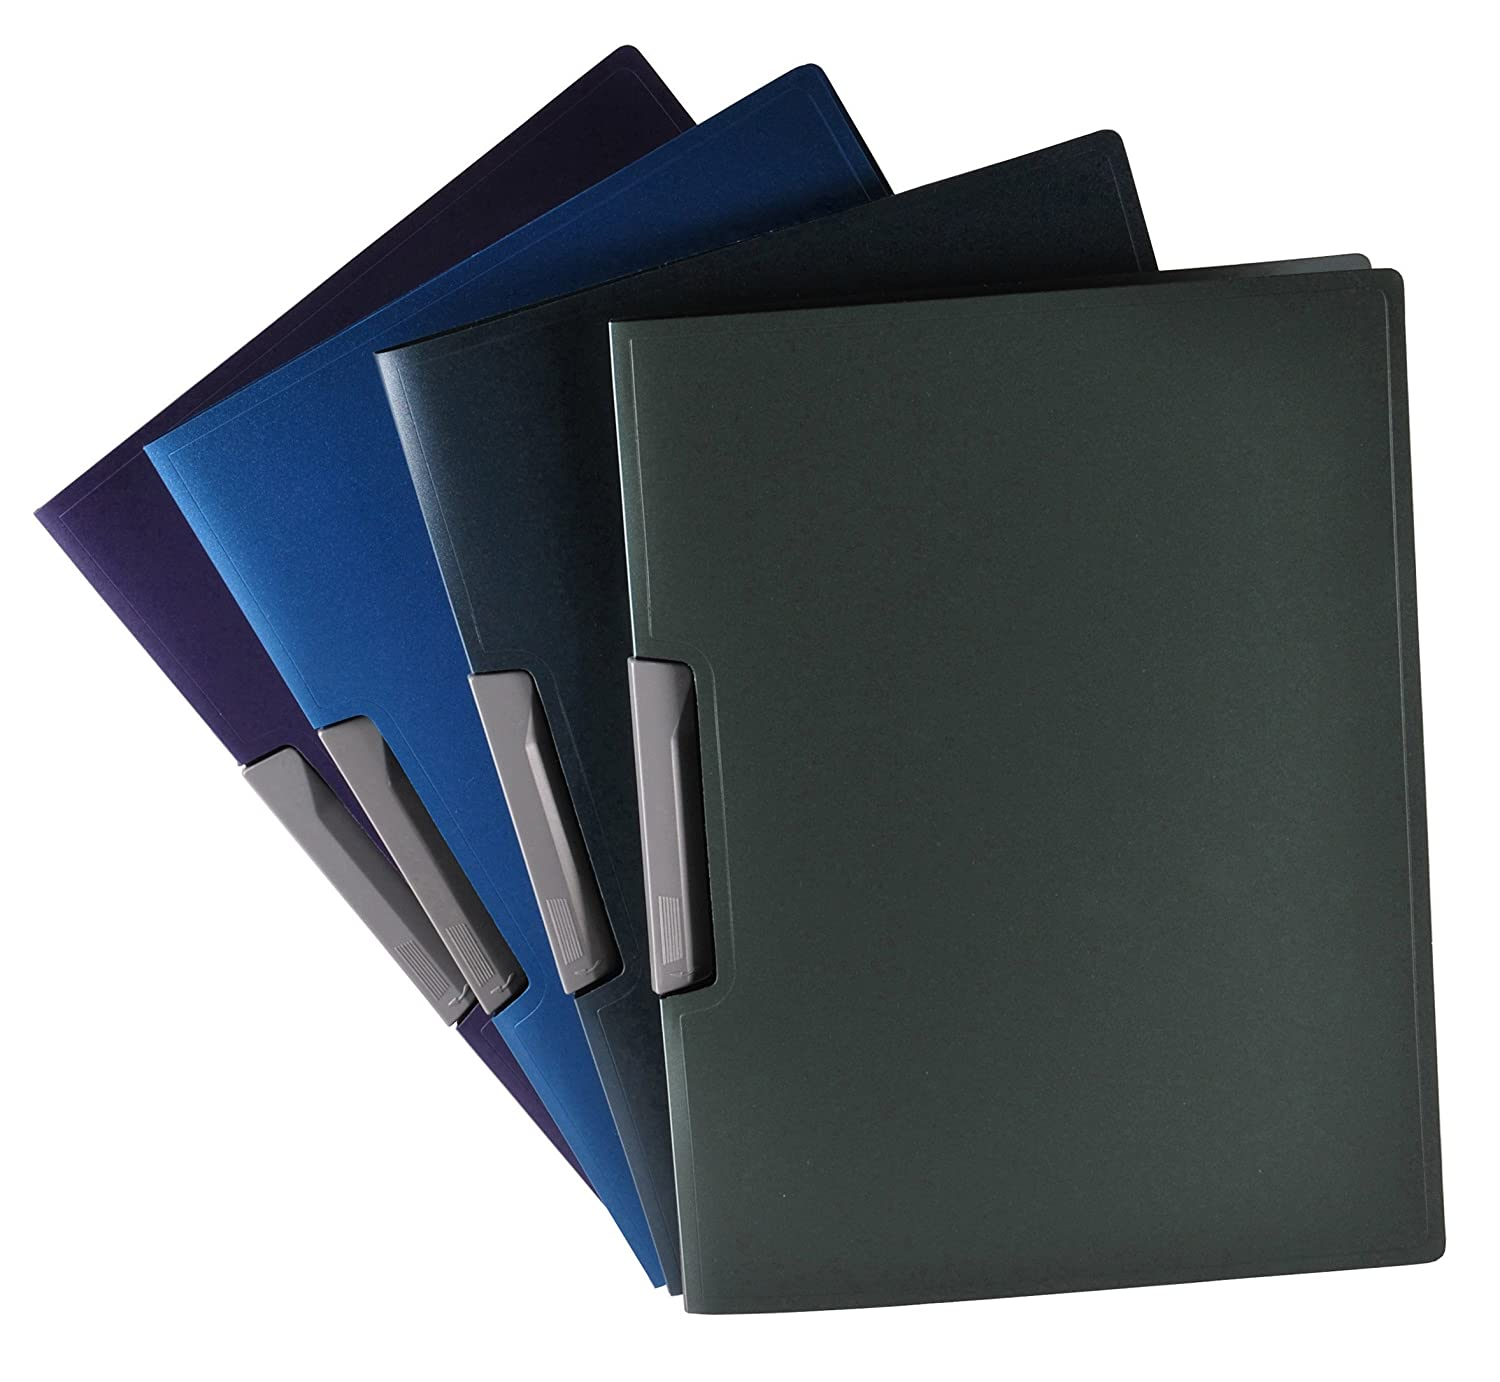 Filexec Products Maxtallic Presentation Folders, Polypropylene, Silver Clip, Colors, Pack of 4, Assorted 50395-6780